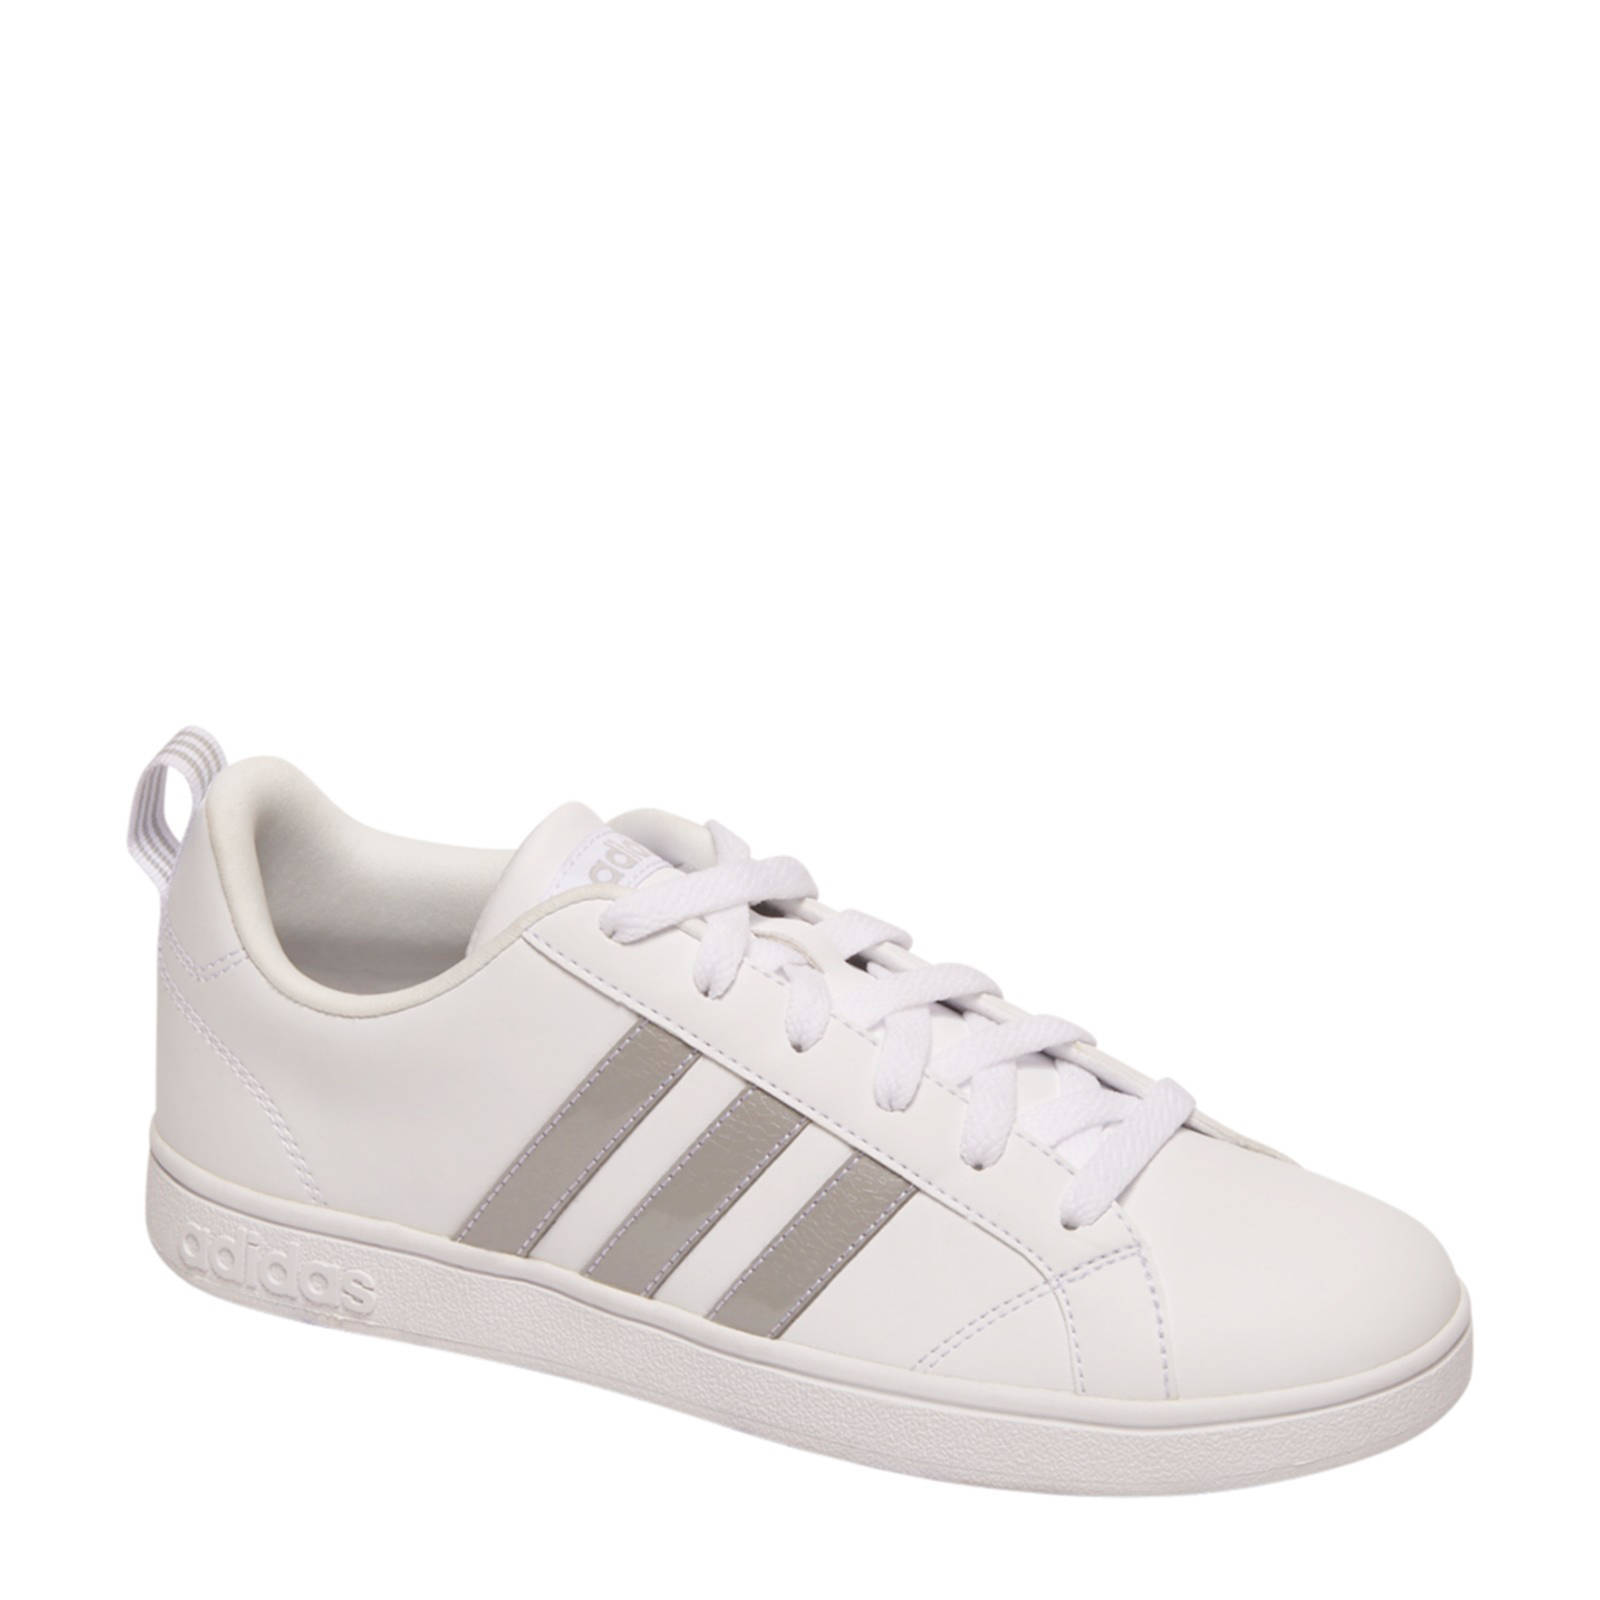 adidas VS Advantage sneakers wit/zilver | wehkamp